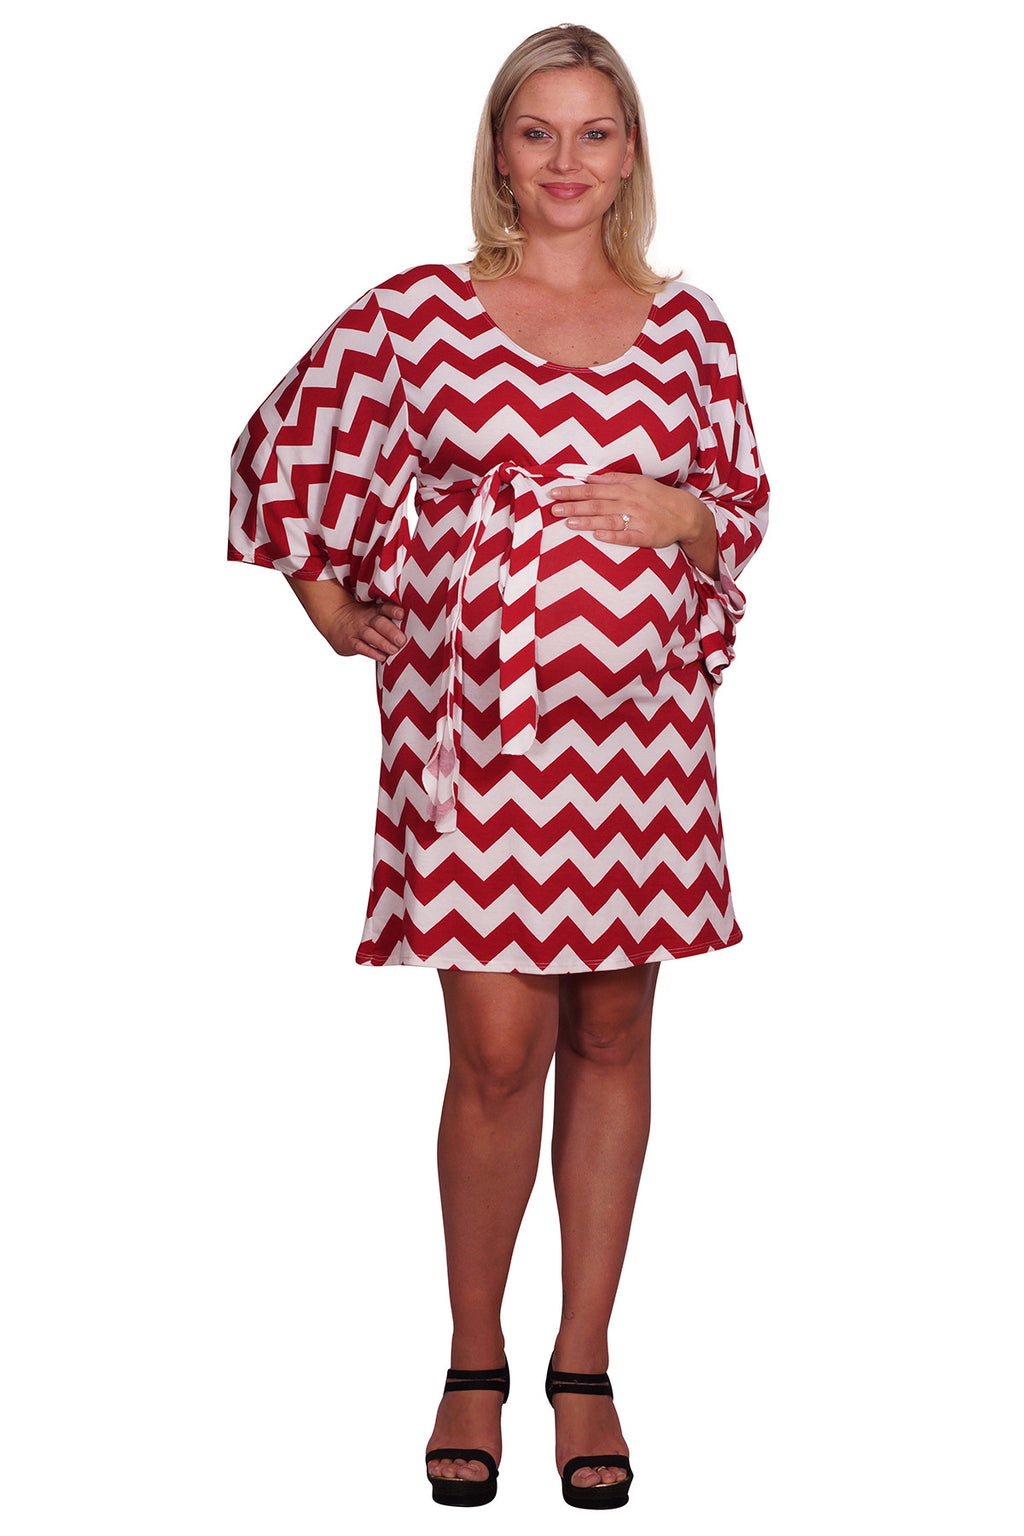 Red Belted Plus Maternity Dress - Mommylicious